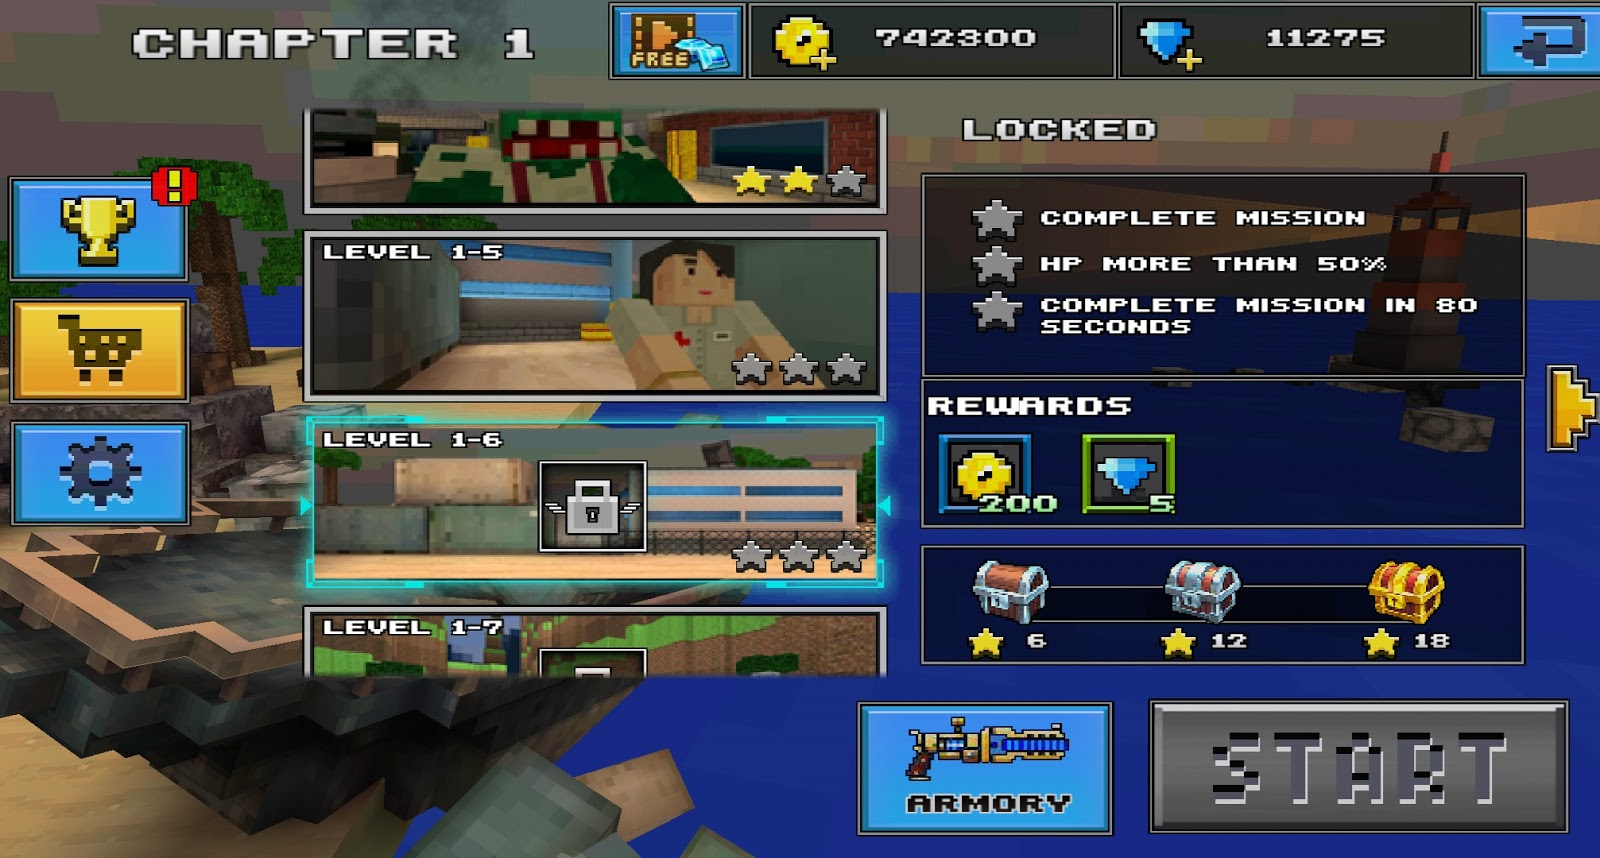 Pixel Shooting 3D Mod Apk Version 1 0 2 Free Shopping - Technical penny